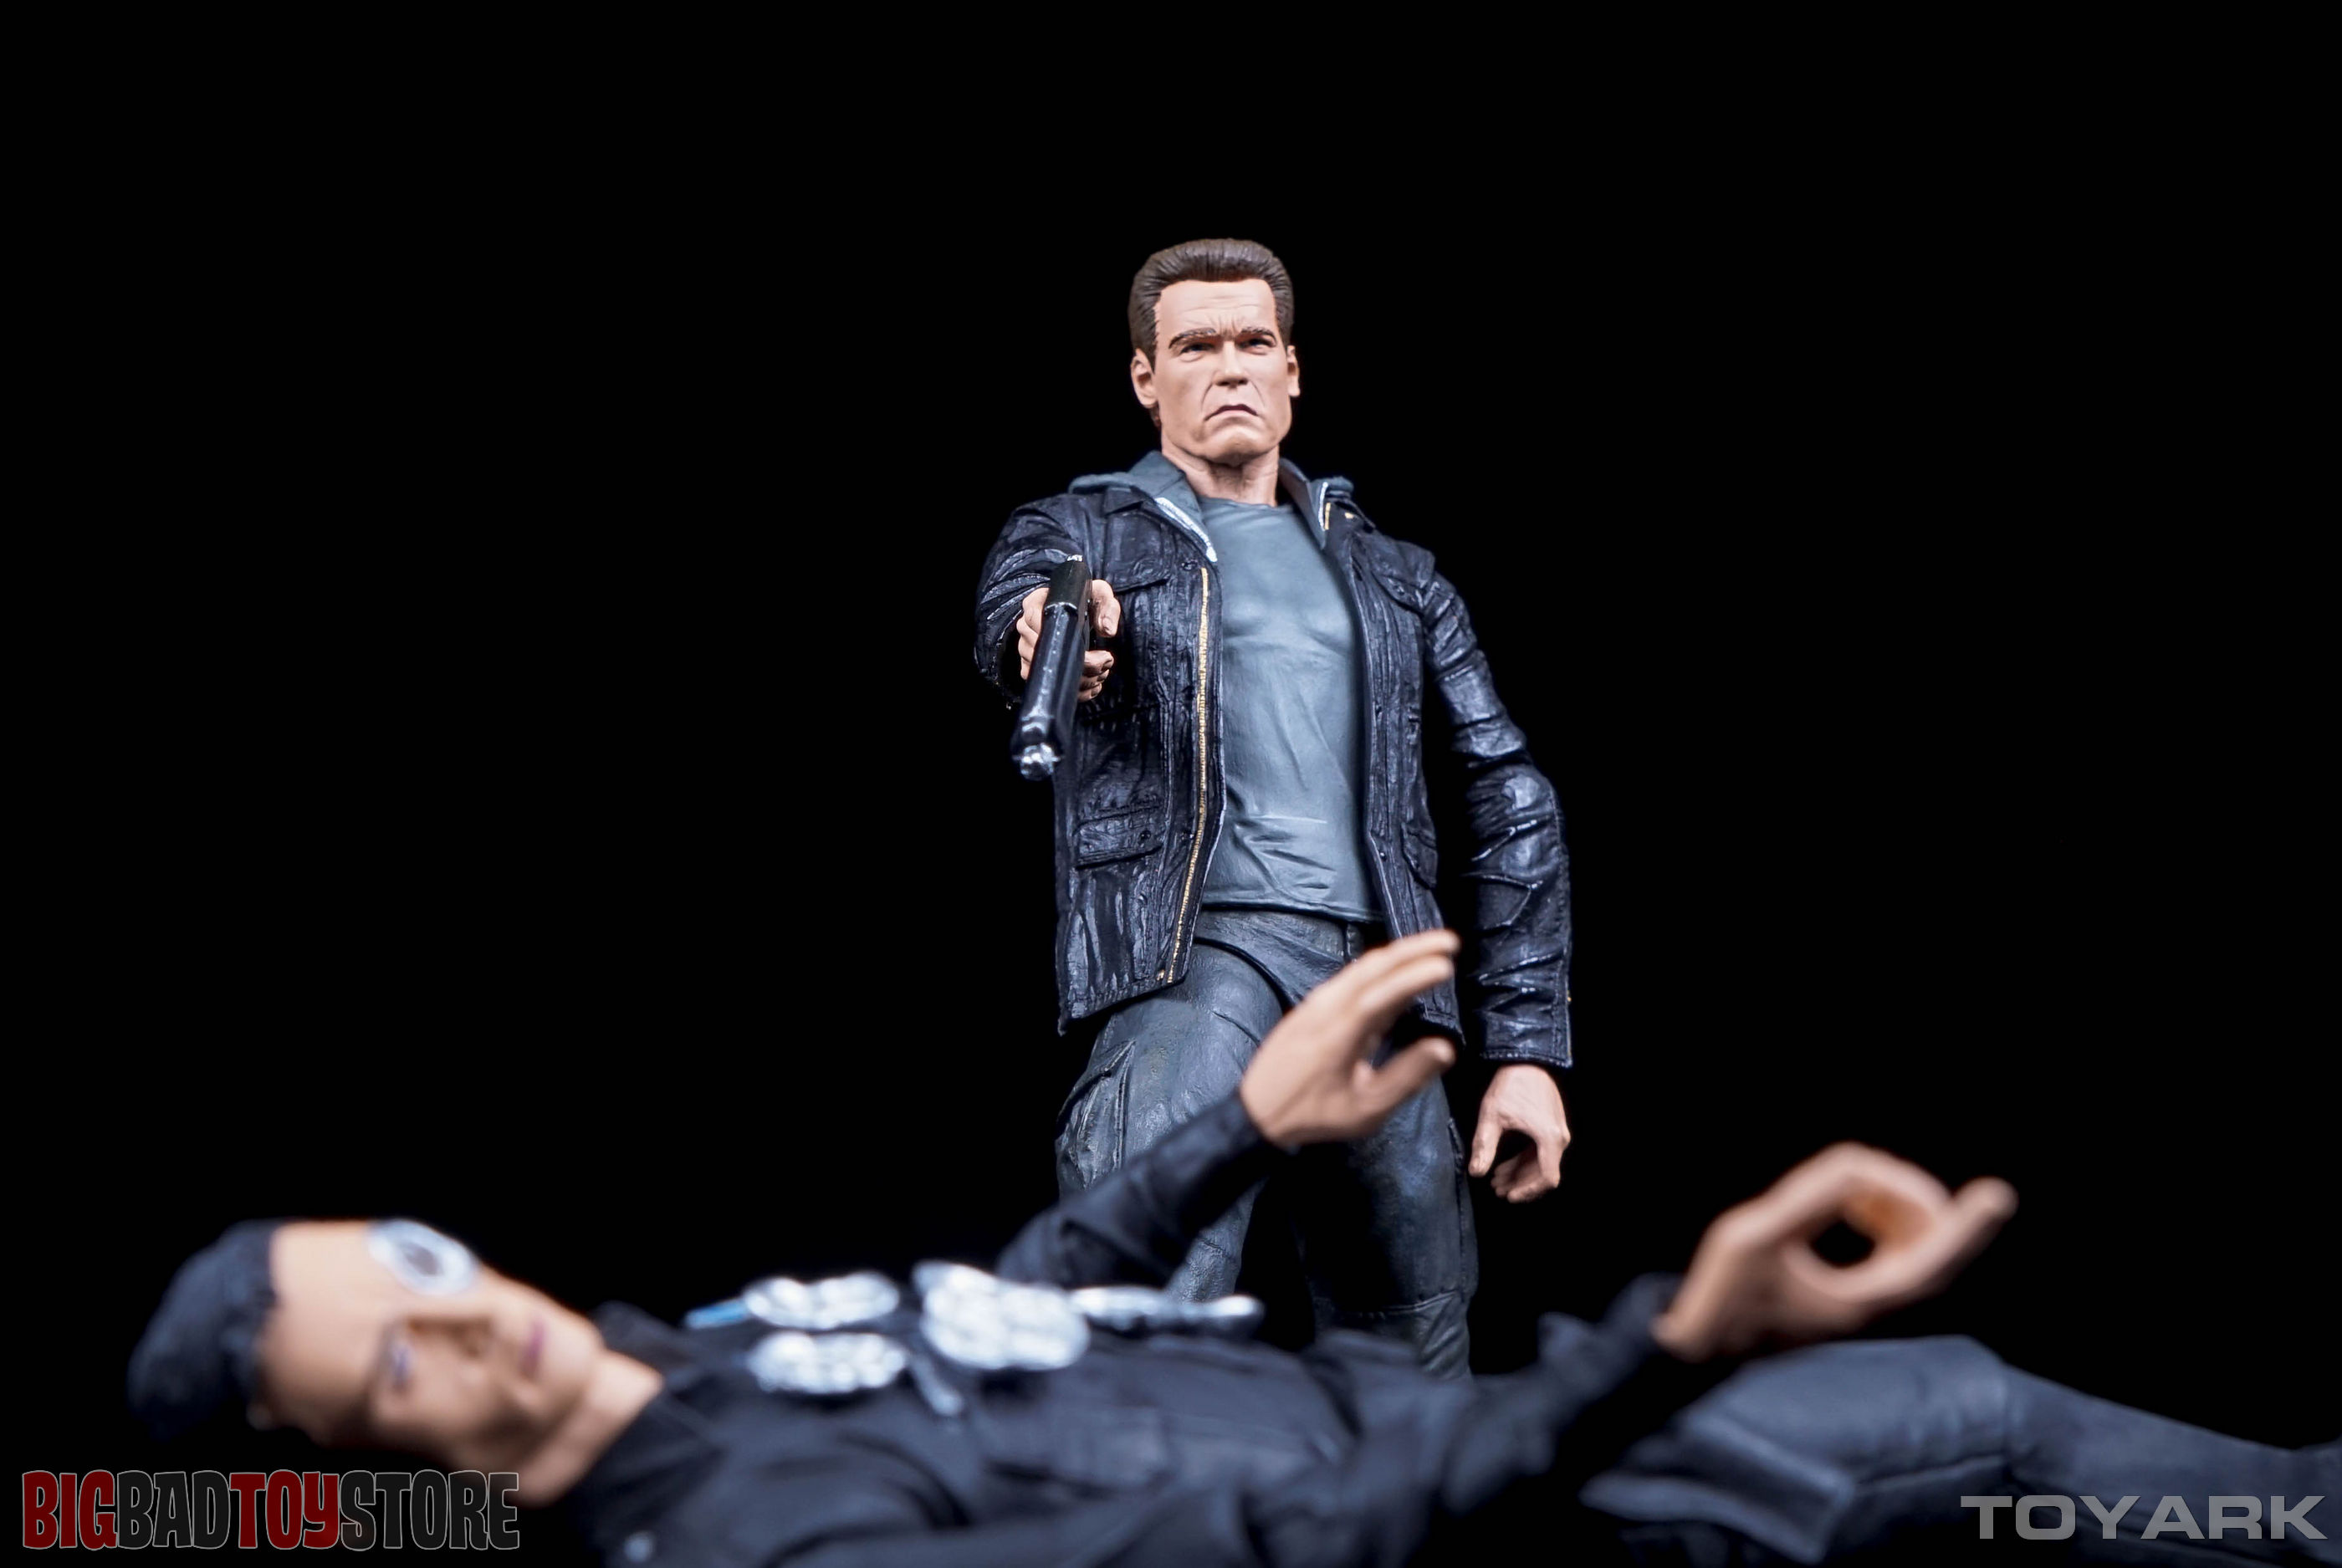 http://news.toyark.com/wp-content/uploads/sites/4/2015/10/NECA-Guardian-T800-Terminator-Genisys-042.jpg